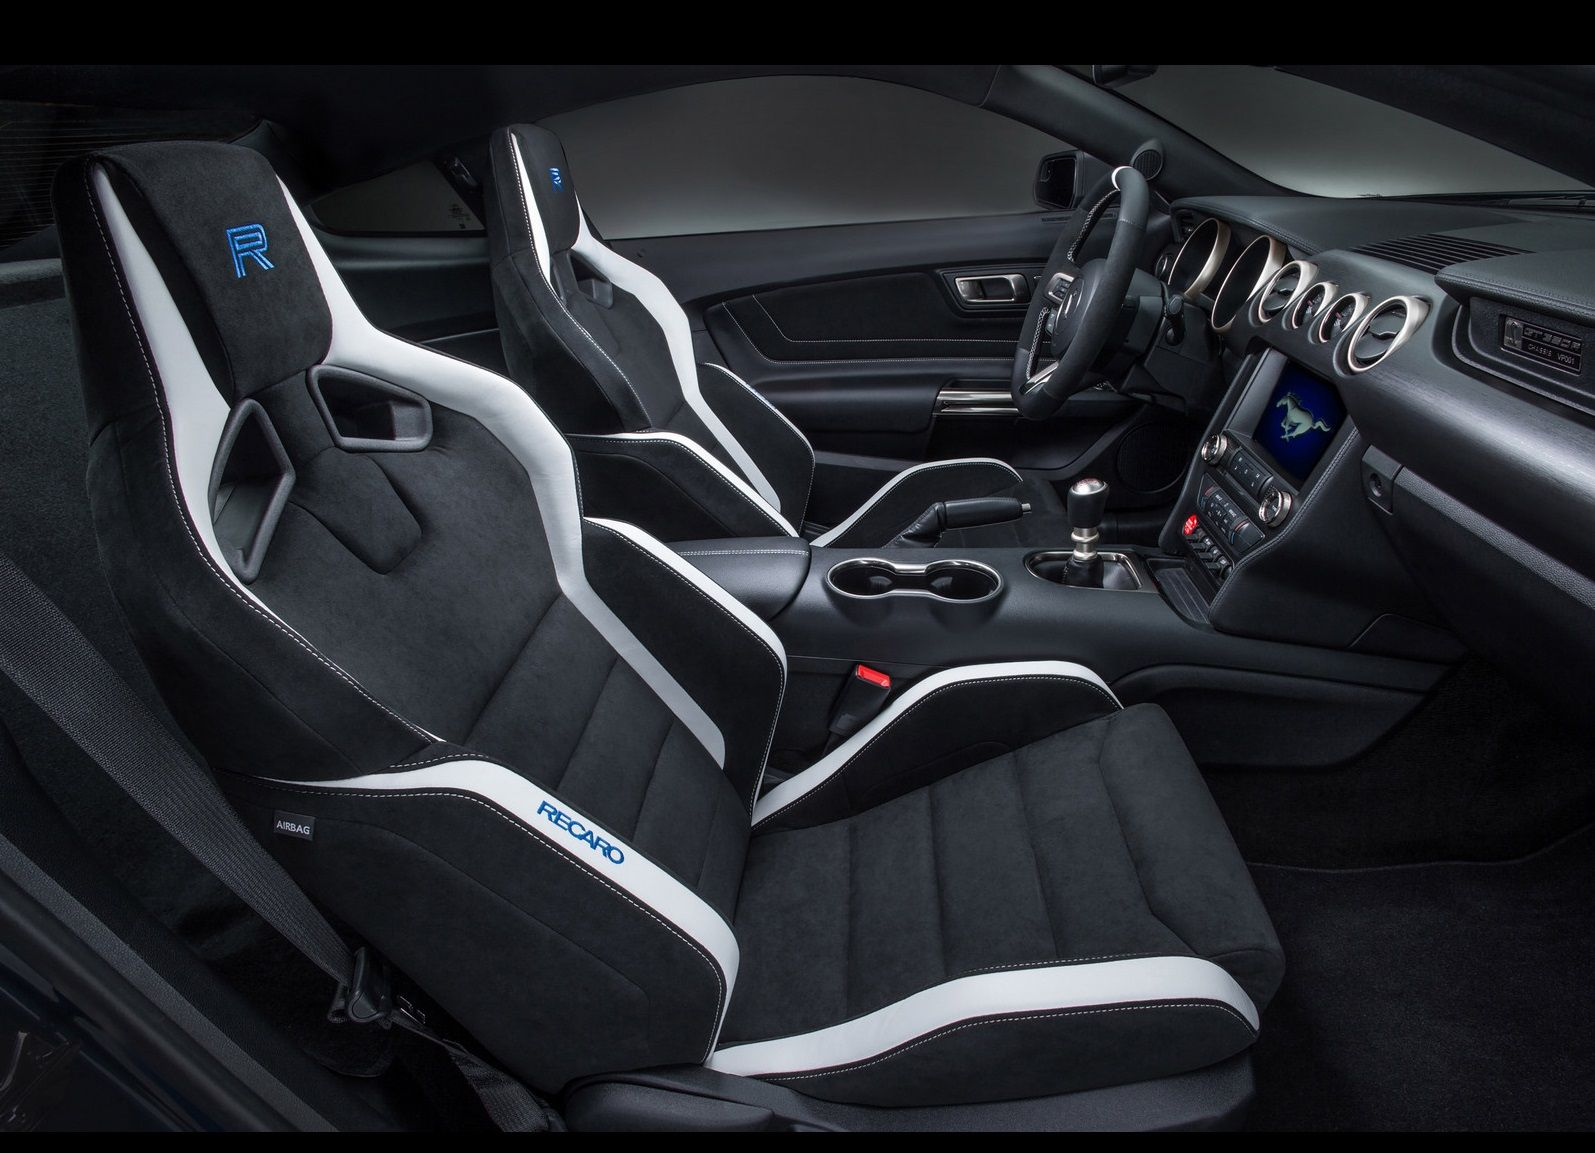 2017 Mustang Gt500 Twin Turbo >> This Could Be The New Twin Turbo 2018 Shelby Mustang Gt500